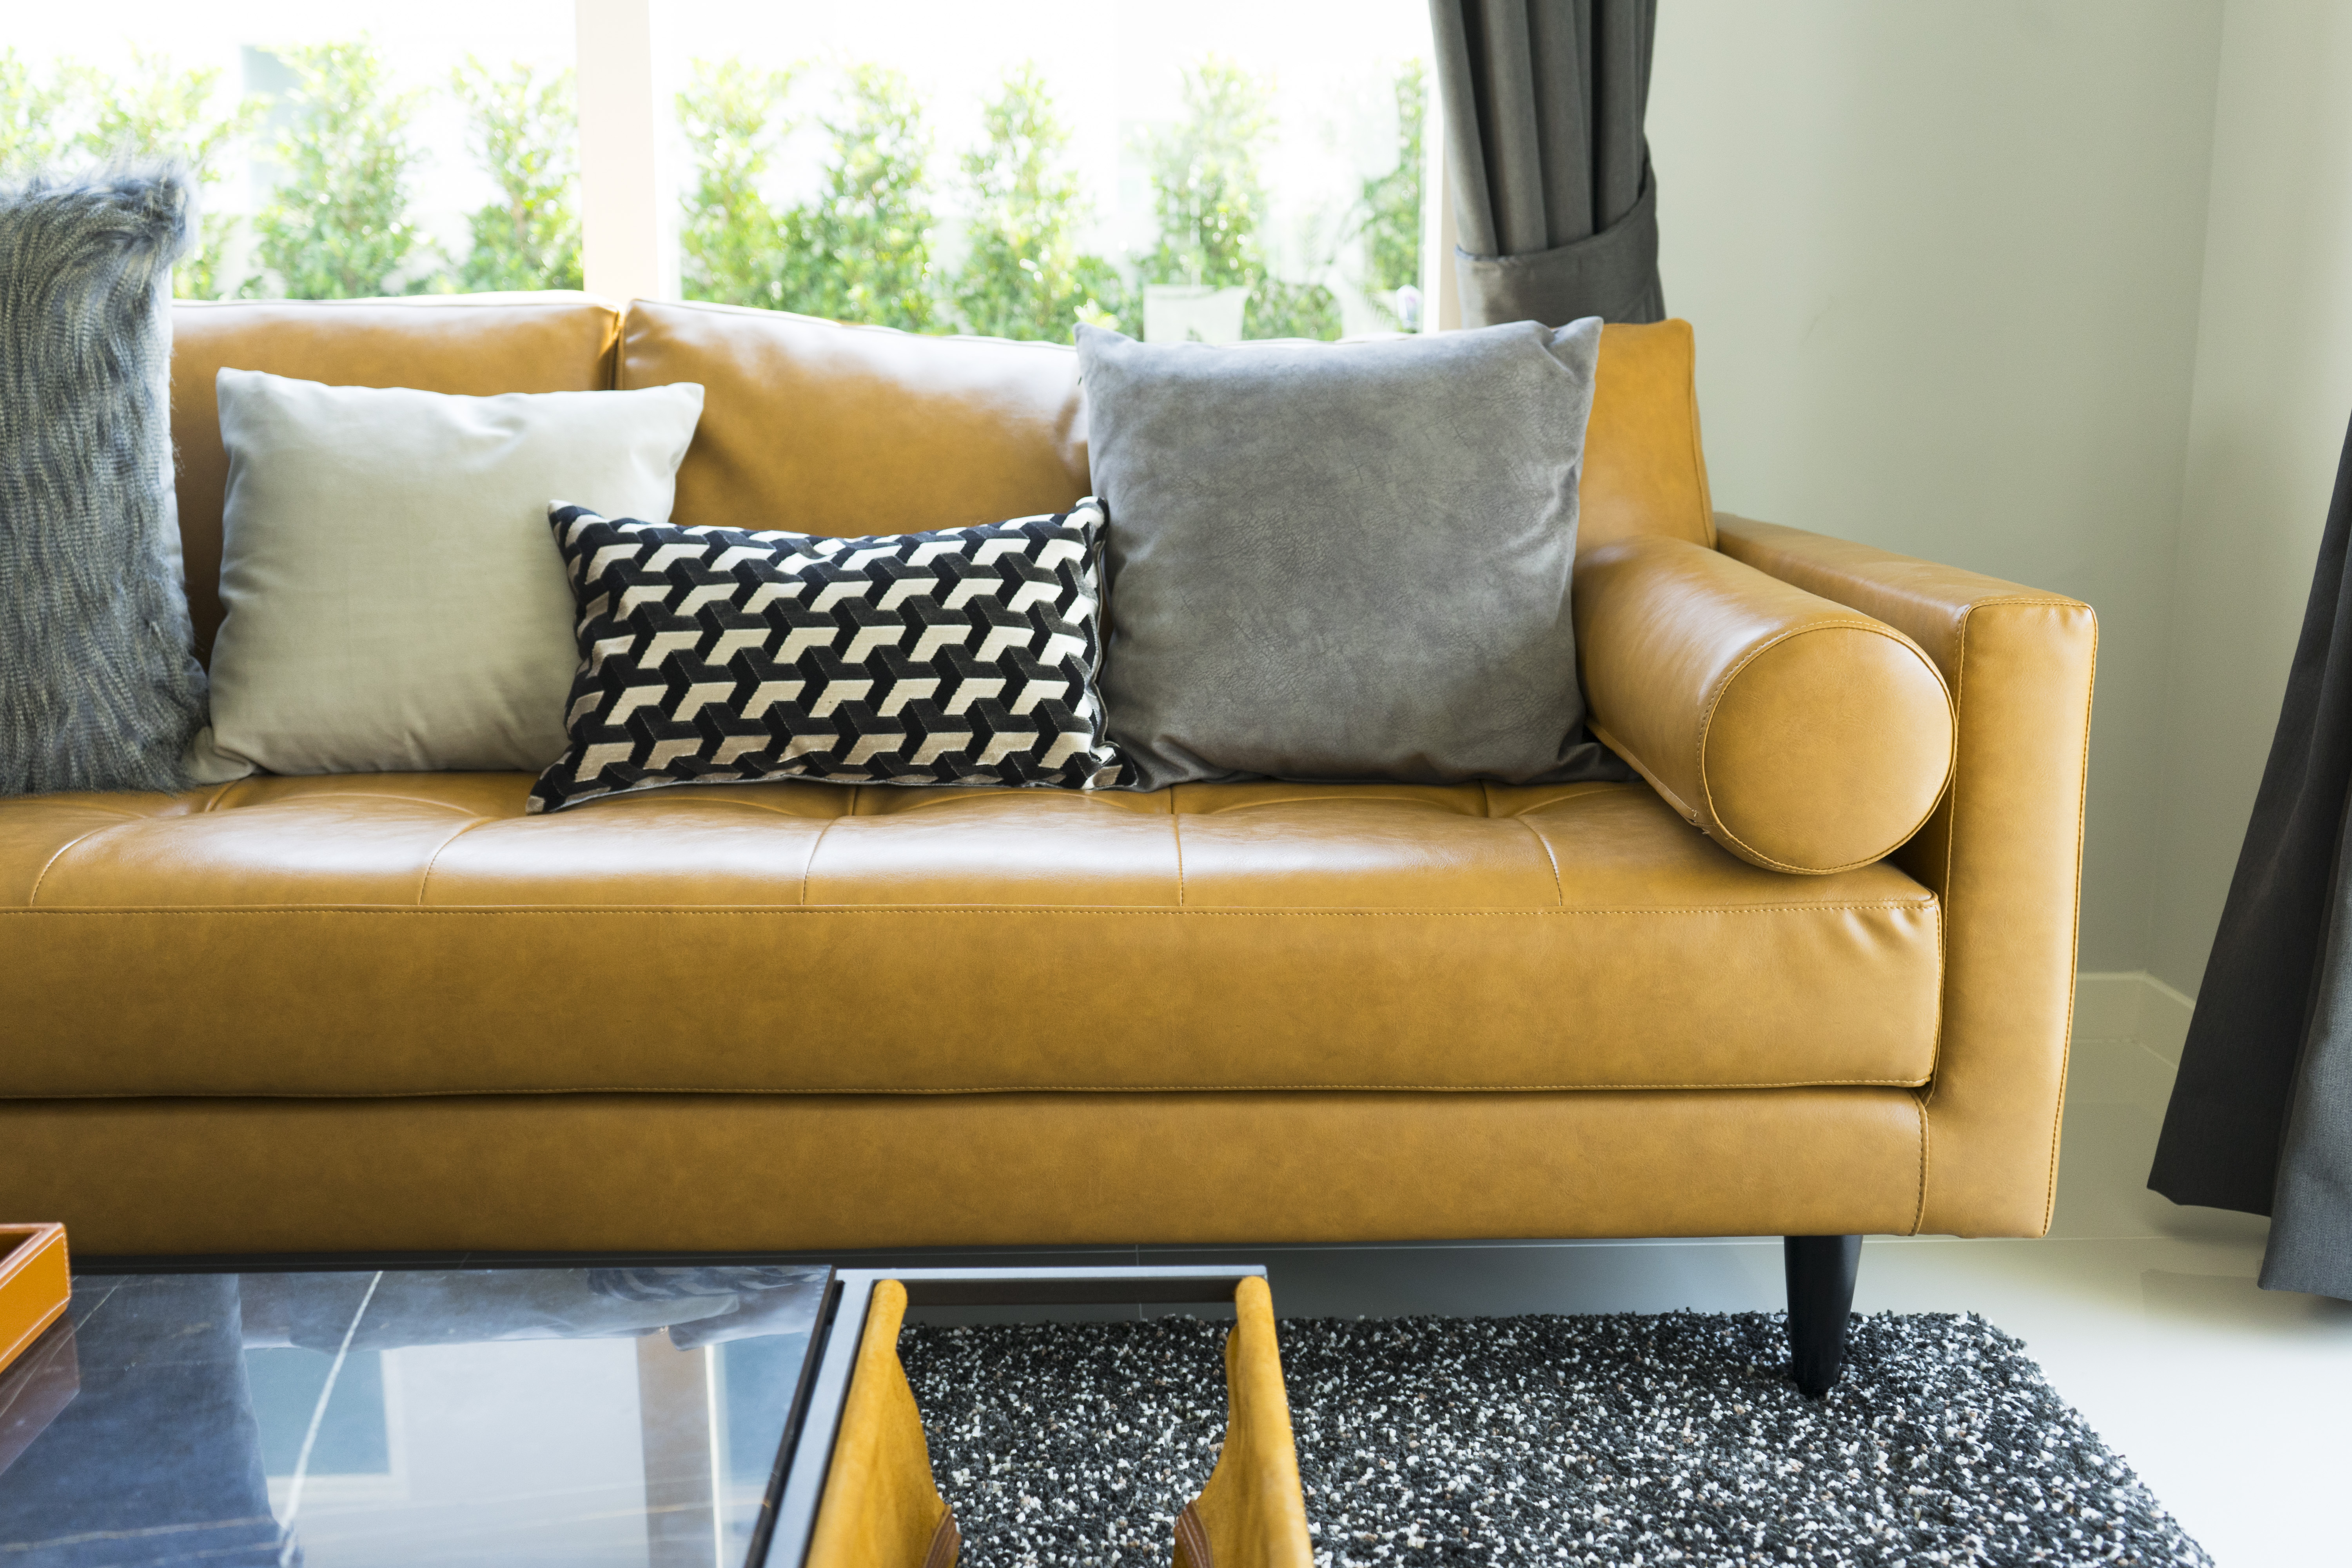 replacement sofa cushions laura ashley kivik cover colors how to fill leather sewn the frame home guides